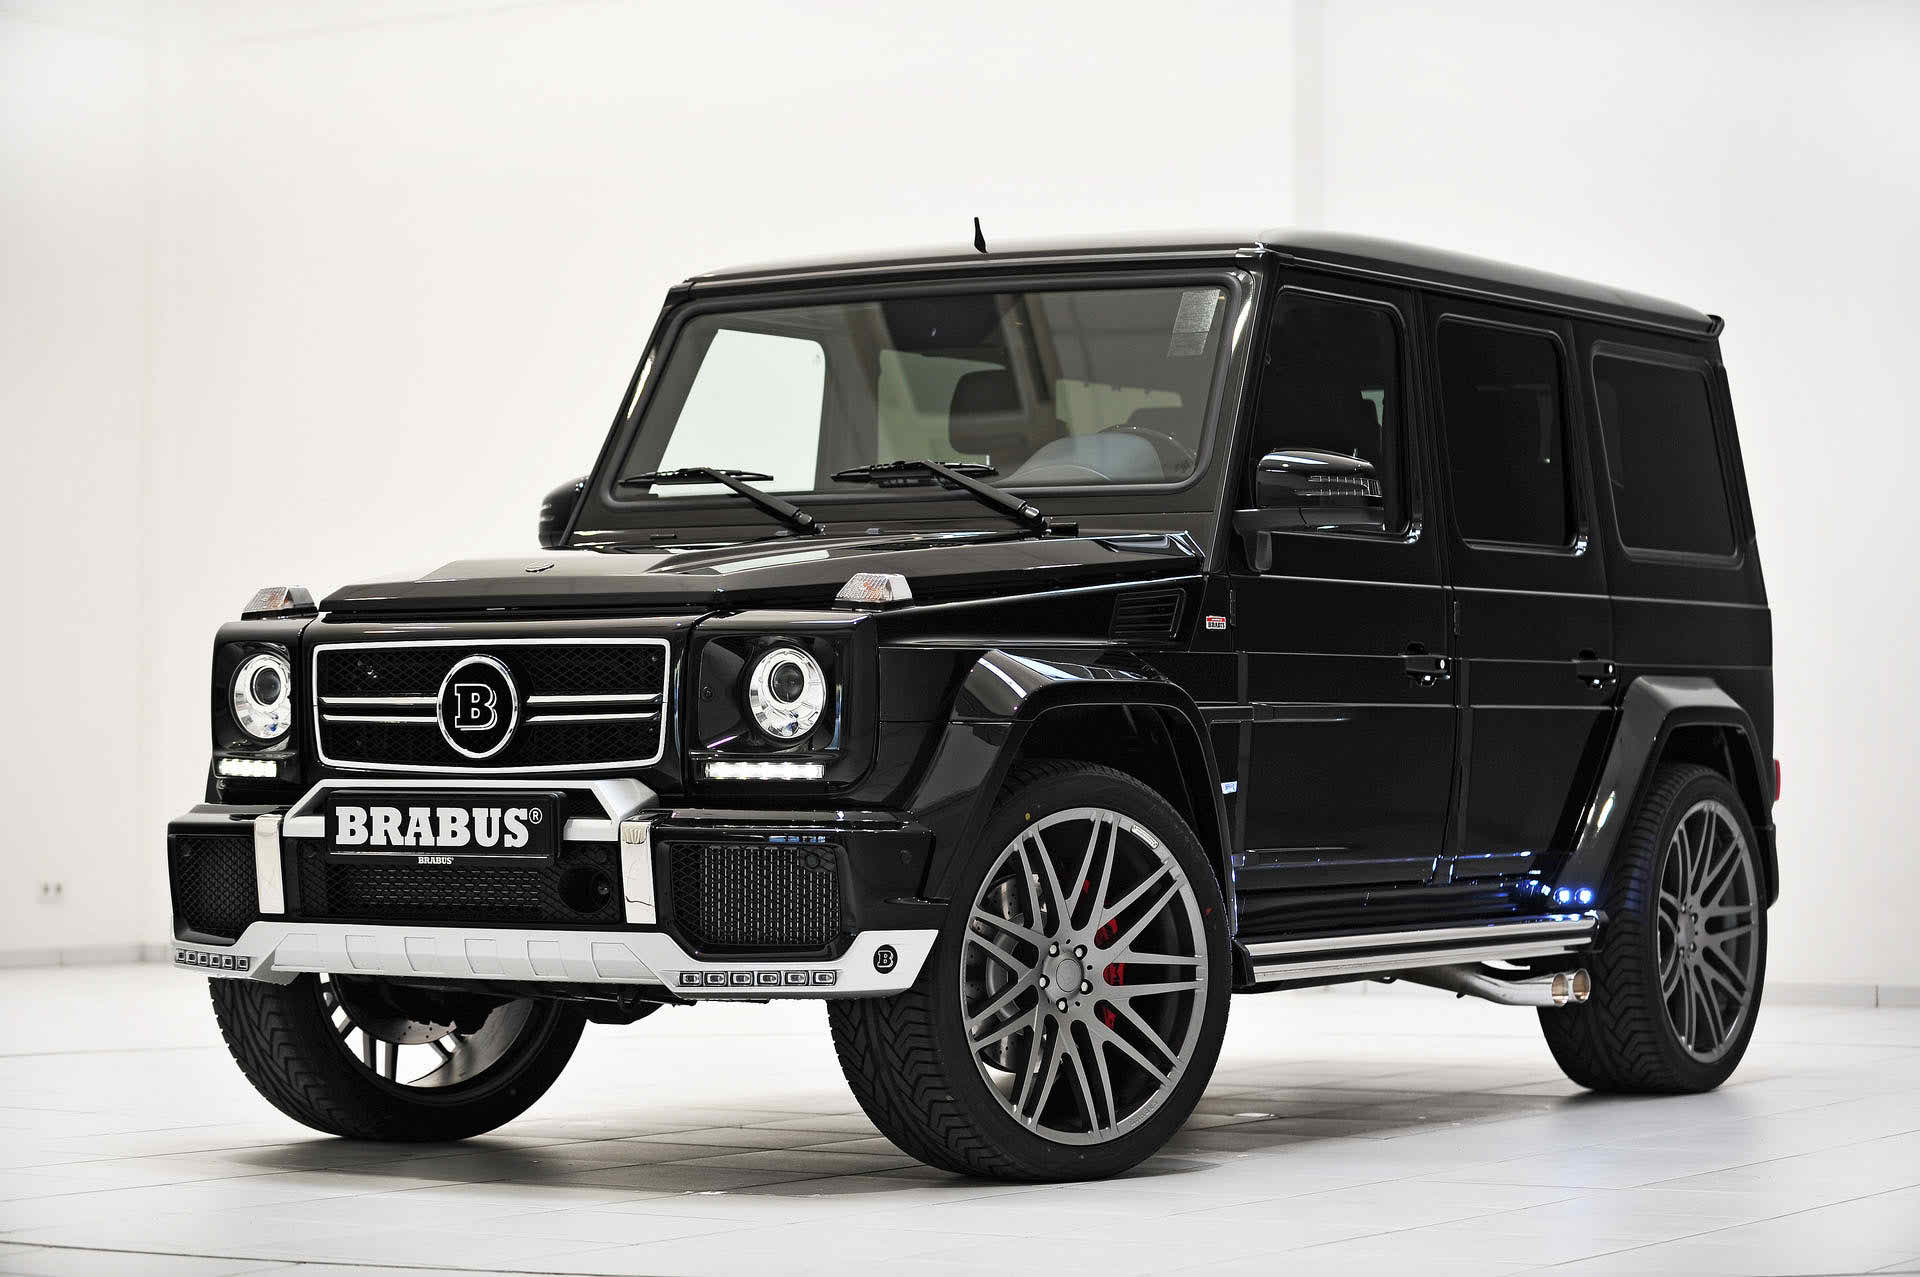 brabus g63/g65 amg widestar conversion kit – gwagenparts